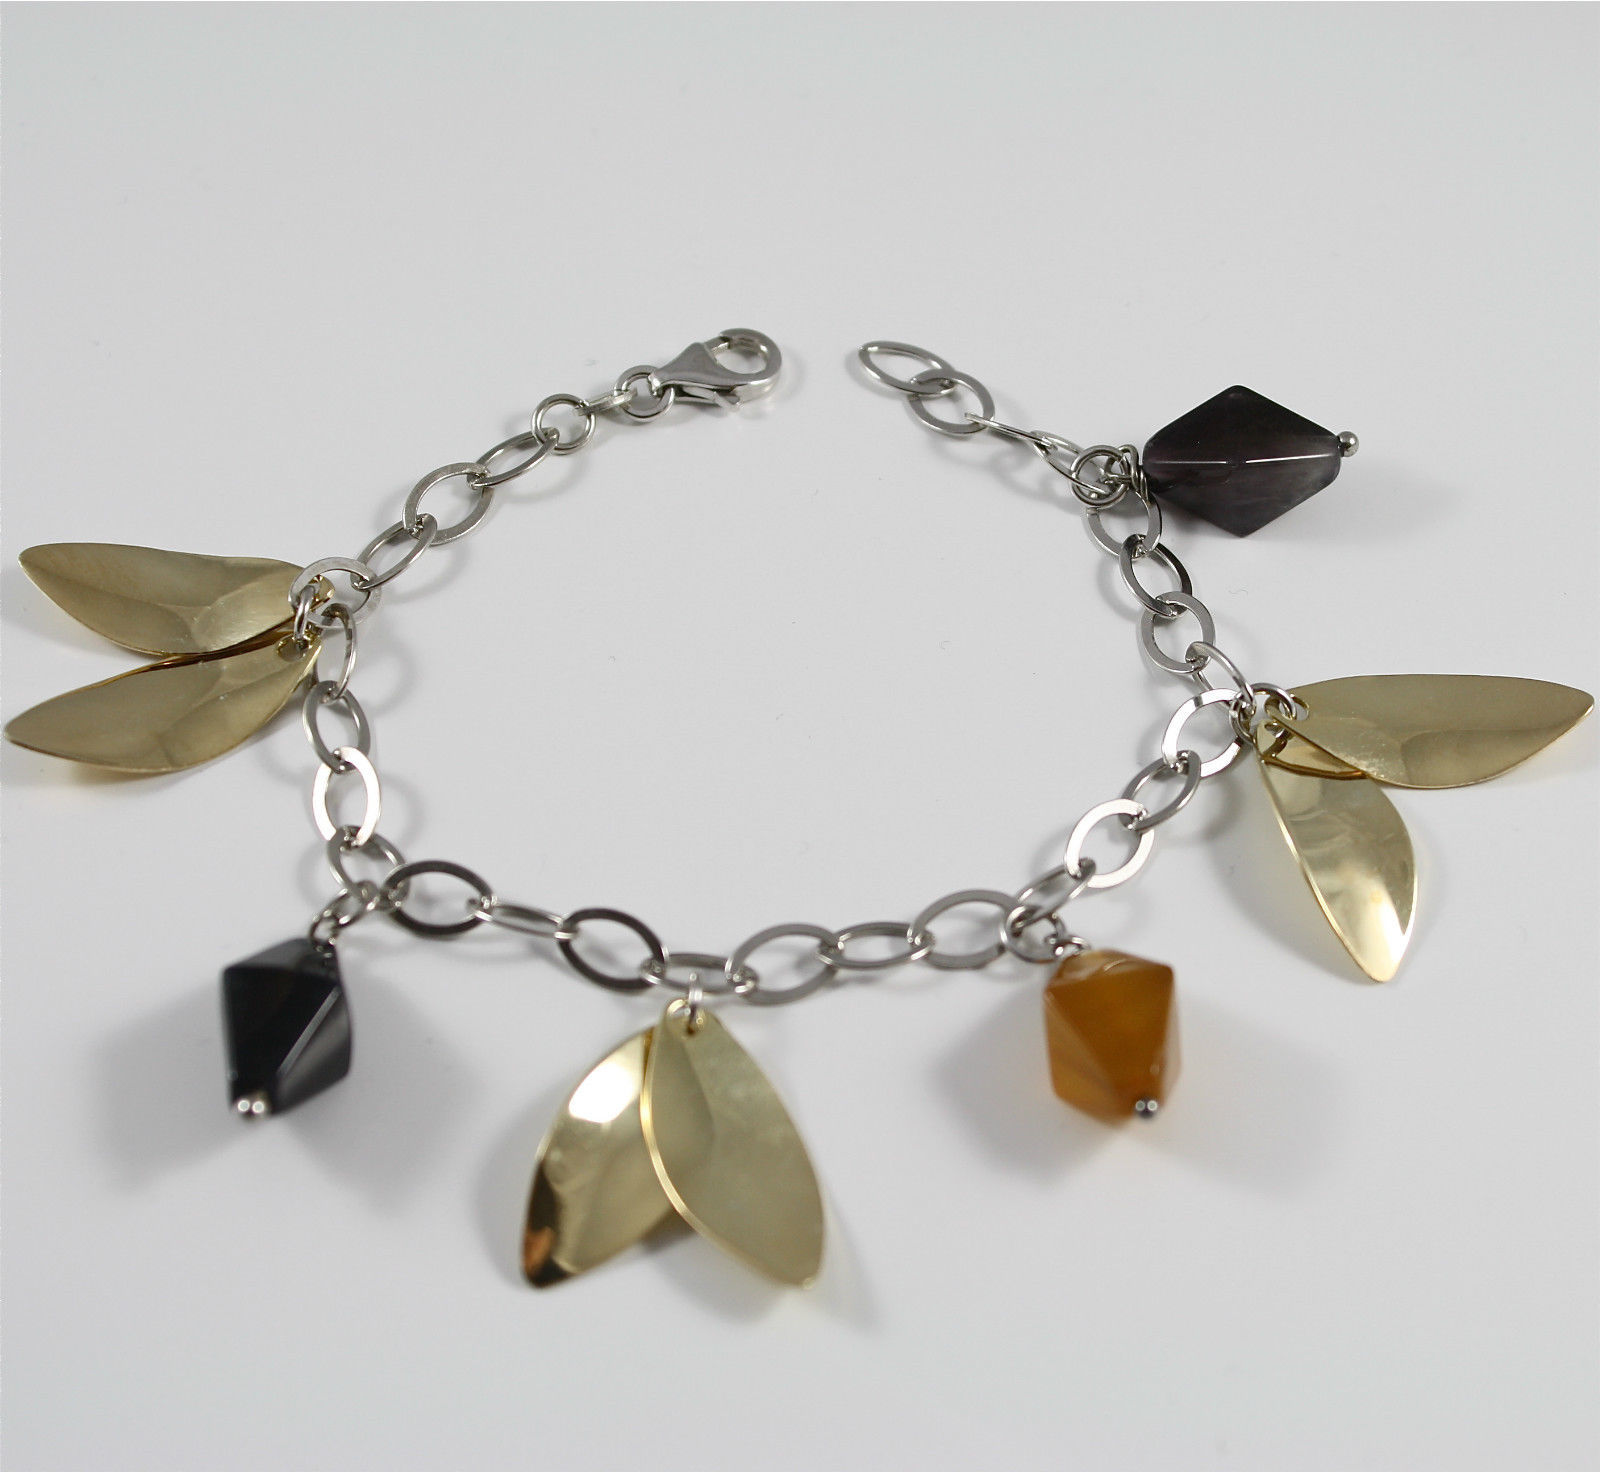 Bracelet in Sterling Silver 925 Rhodium with Jade Brown and Petals Gold Pendant